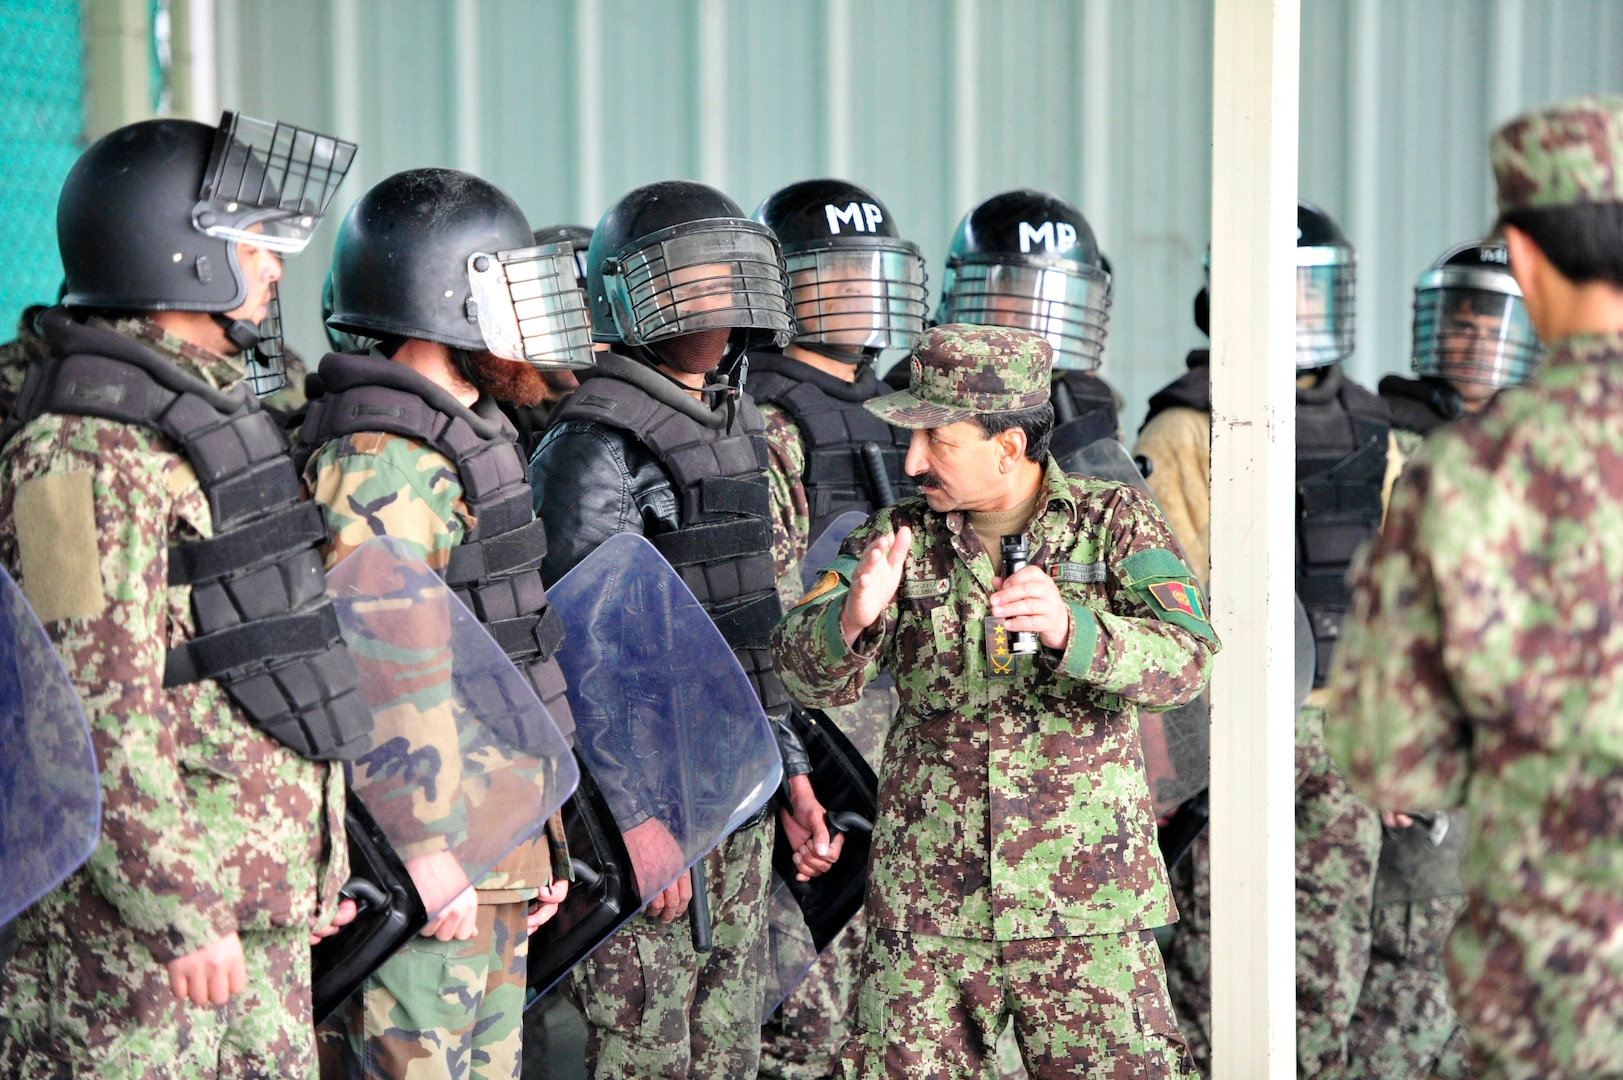 PARWAN PROVINCE, Afghanistan (Jan. 17, 2017) - Afghanistan National Army Military Police Guard Command conduct training on riot and crowd control techniques at the Afghanistan National Detention Facility Prison - Parwan.  The ANA MPGC conducted an emergency action drill, Jan. 17, 2017 at the detention facility to test response capabilities both inside the prison and all necessary external support. Photo by Bob Harrison, U.S. Forces Afghanistan Public Affairs.